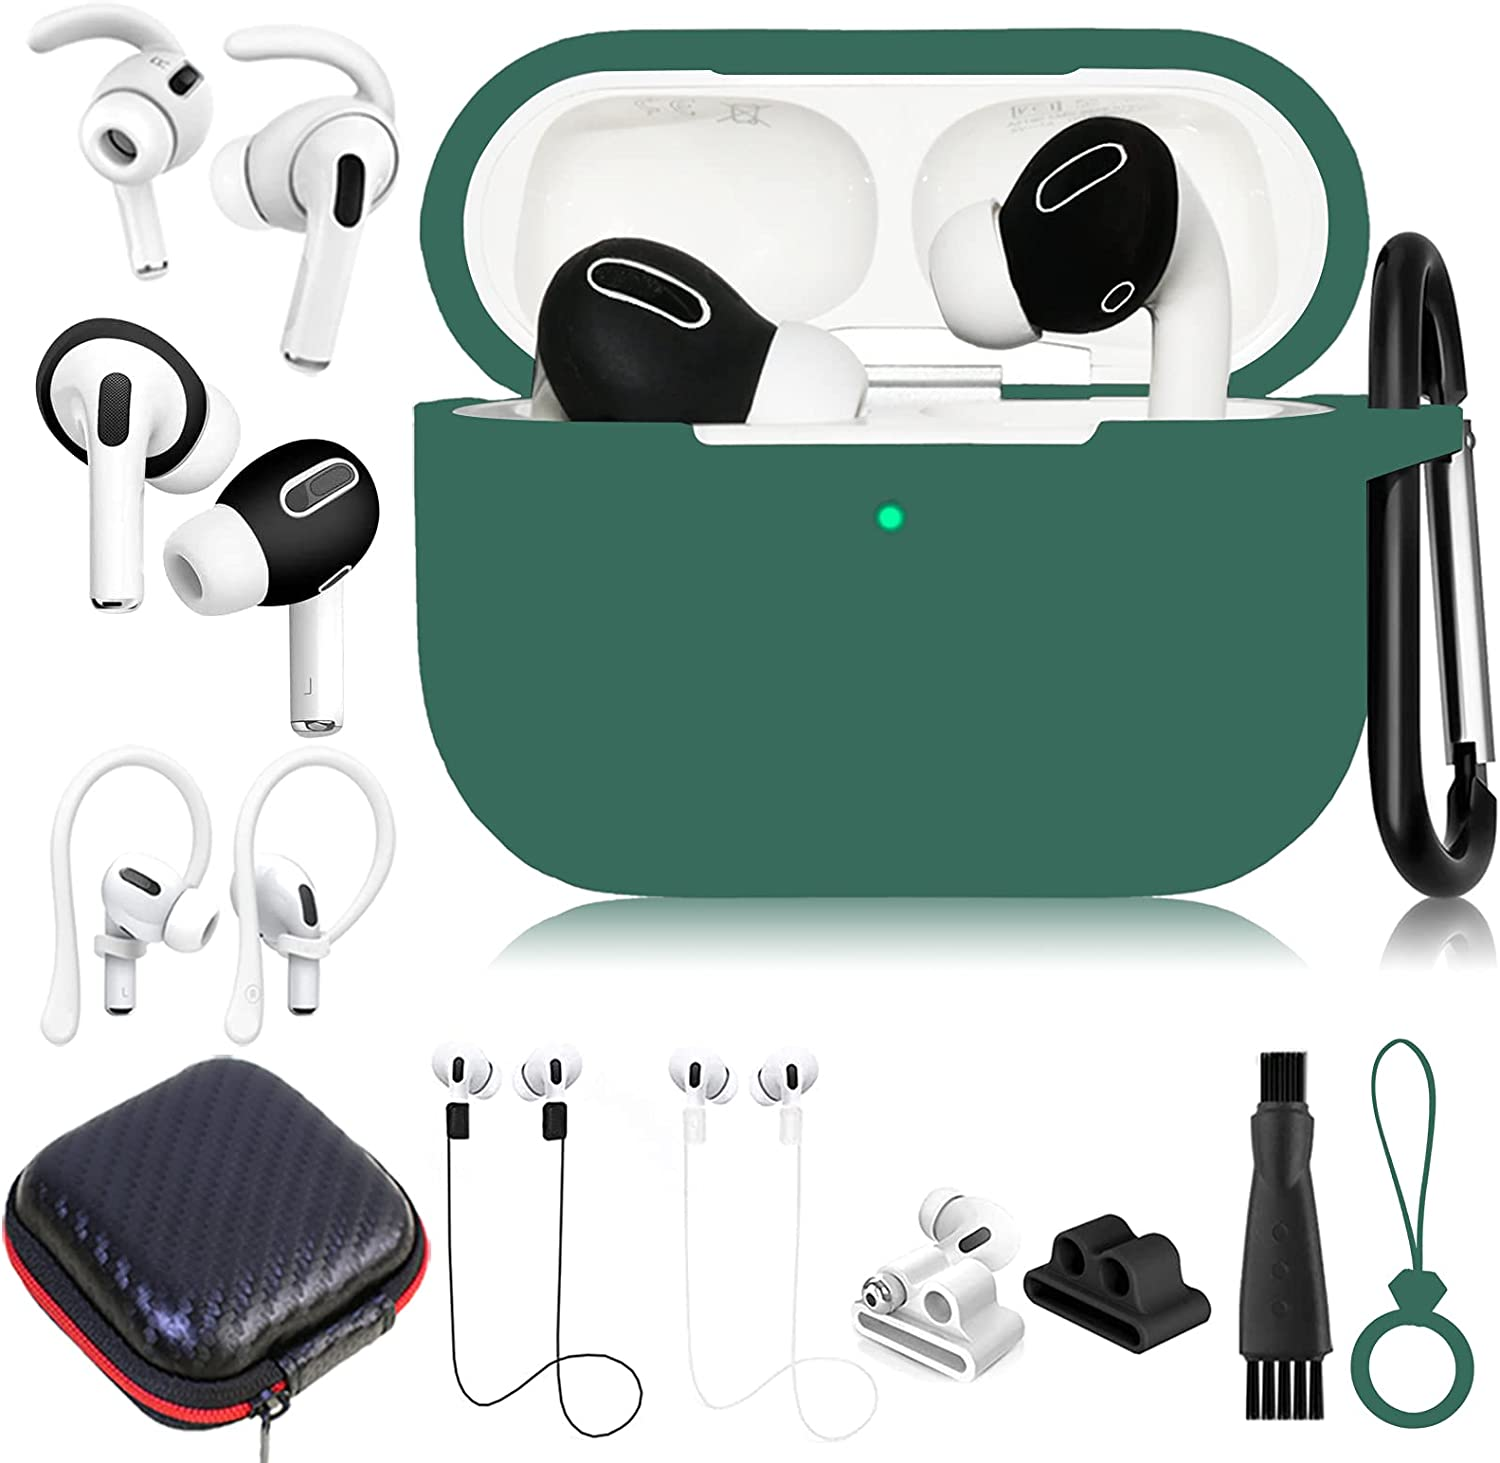 Airpods Pro Case Cover Accessories Set,12 in 1 Protective Silicone Airpod Pro Accessory Kit for Apple Airpods Pro Charging Case w/ Keychain/Ear Cover/Watch Band Holder/Strap/Carrying Box for Women Men